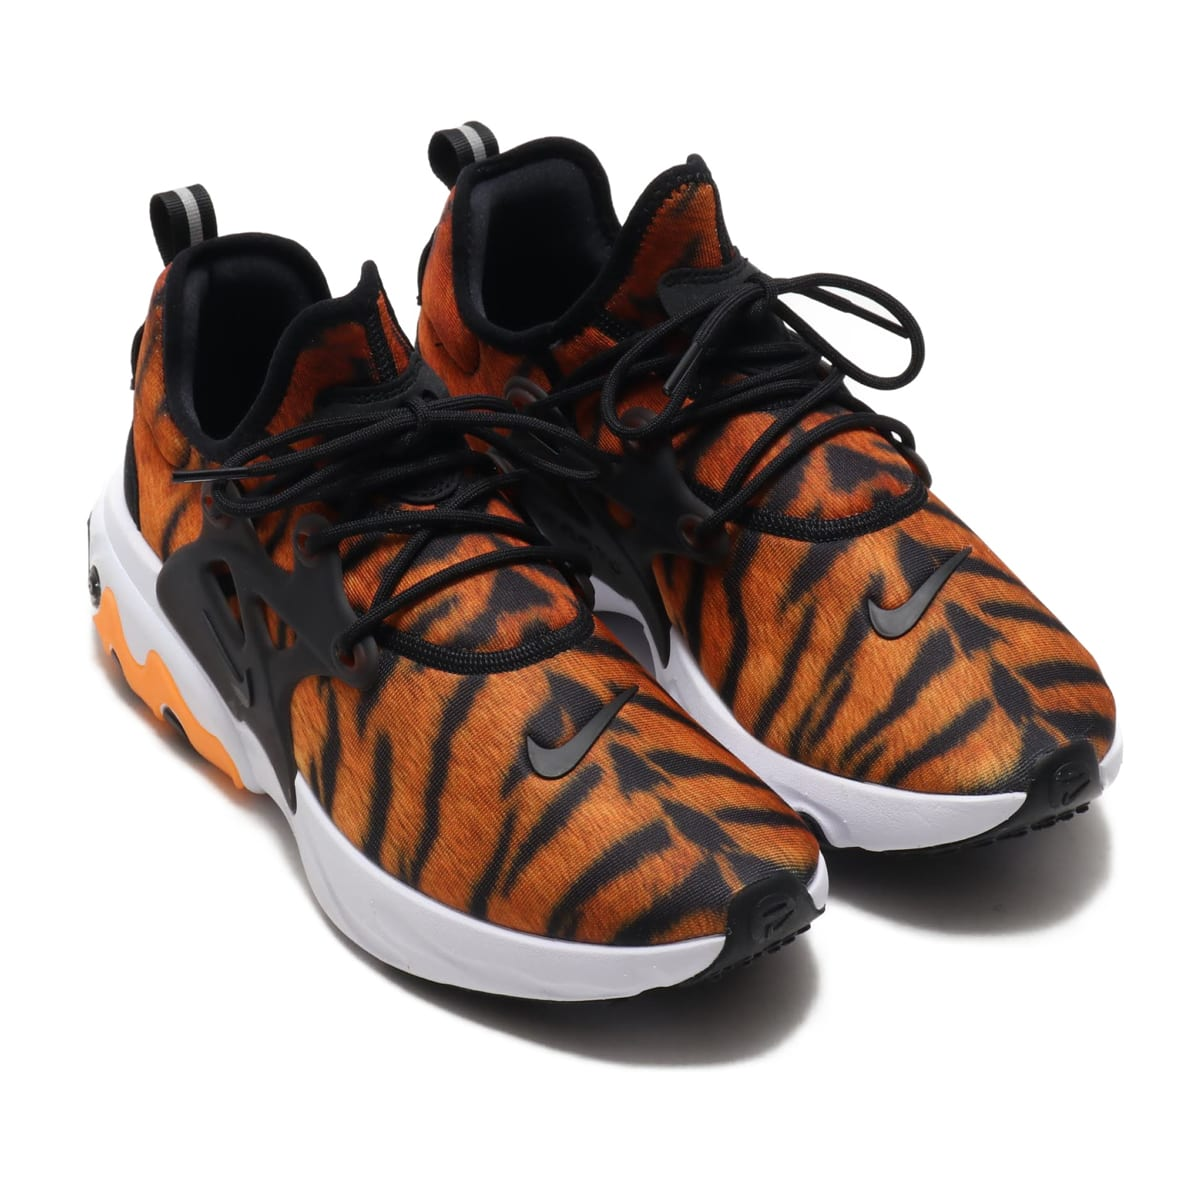 NIKE REACT PRESTO PRM MAGMA ORANGE/BLACK-WHITE 20SP-S_photo_large